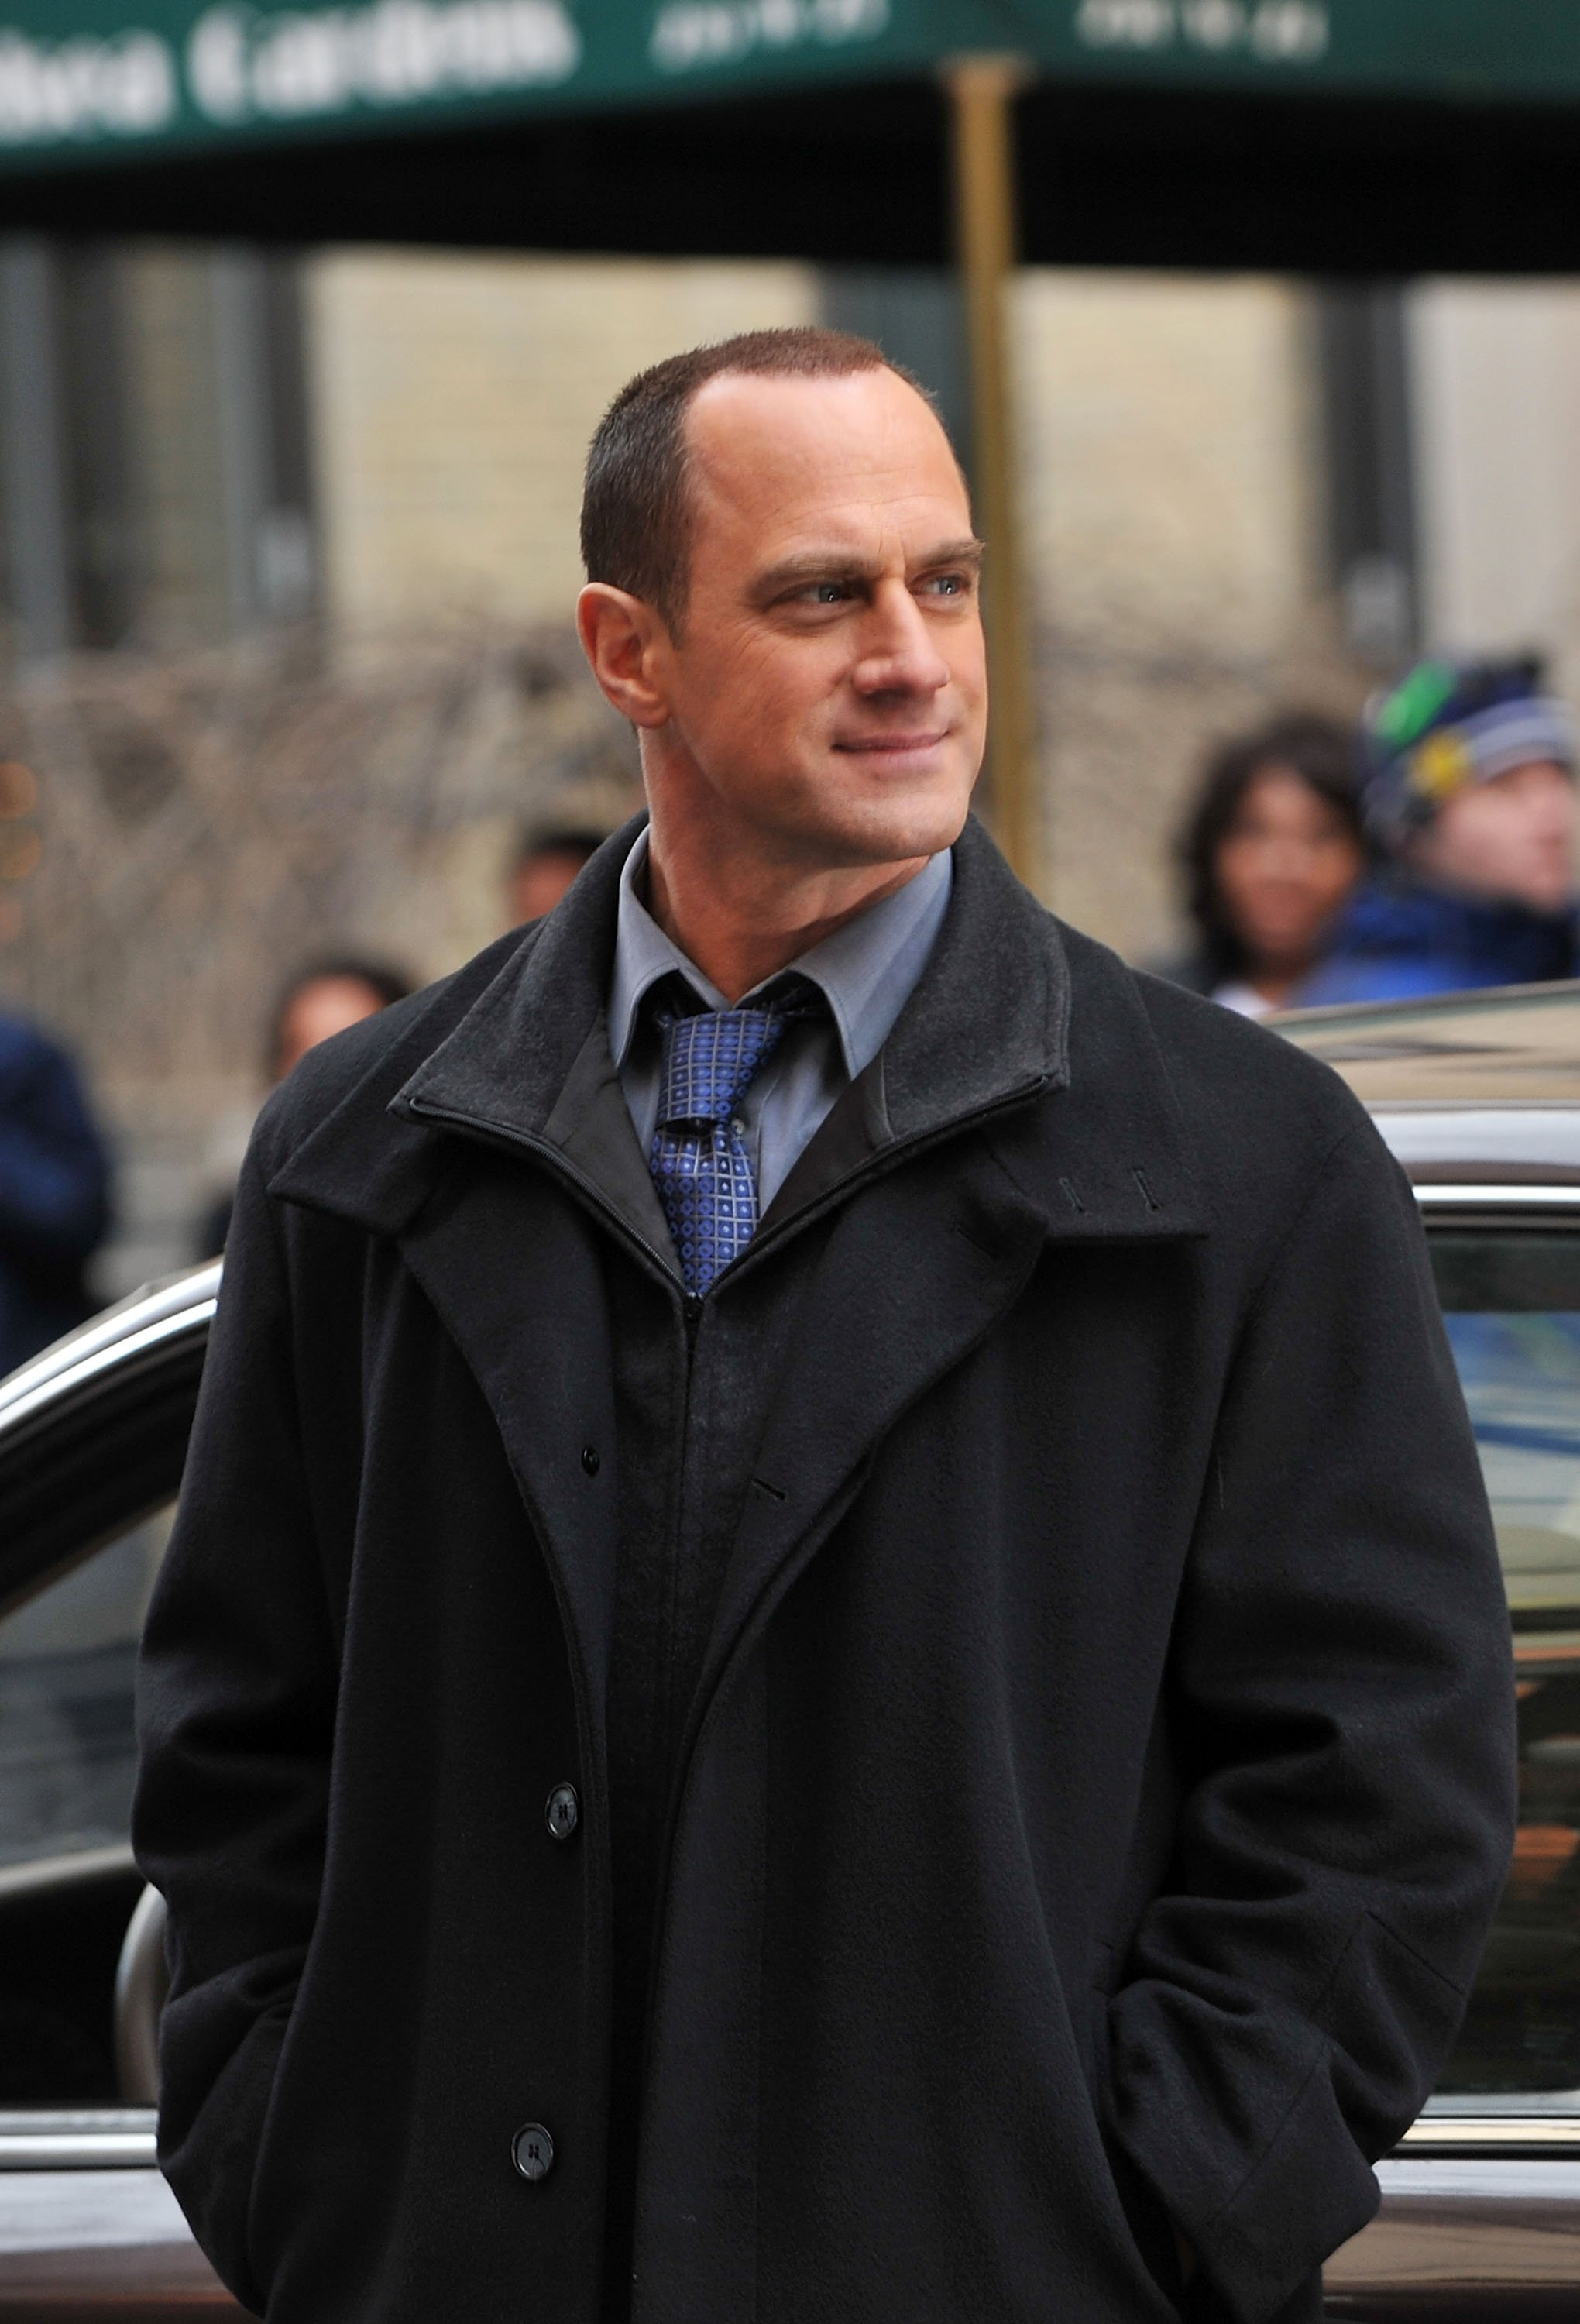 """Christopher Meloni on location for """"Law & Order: SVU"""" on the streets of Manhattan on January 26, 2010 